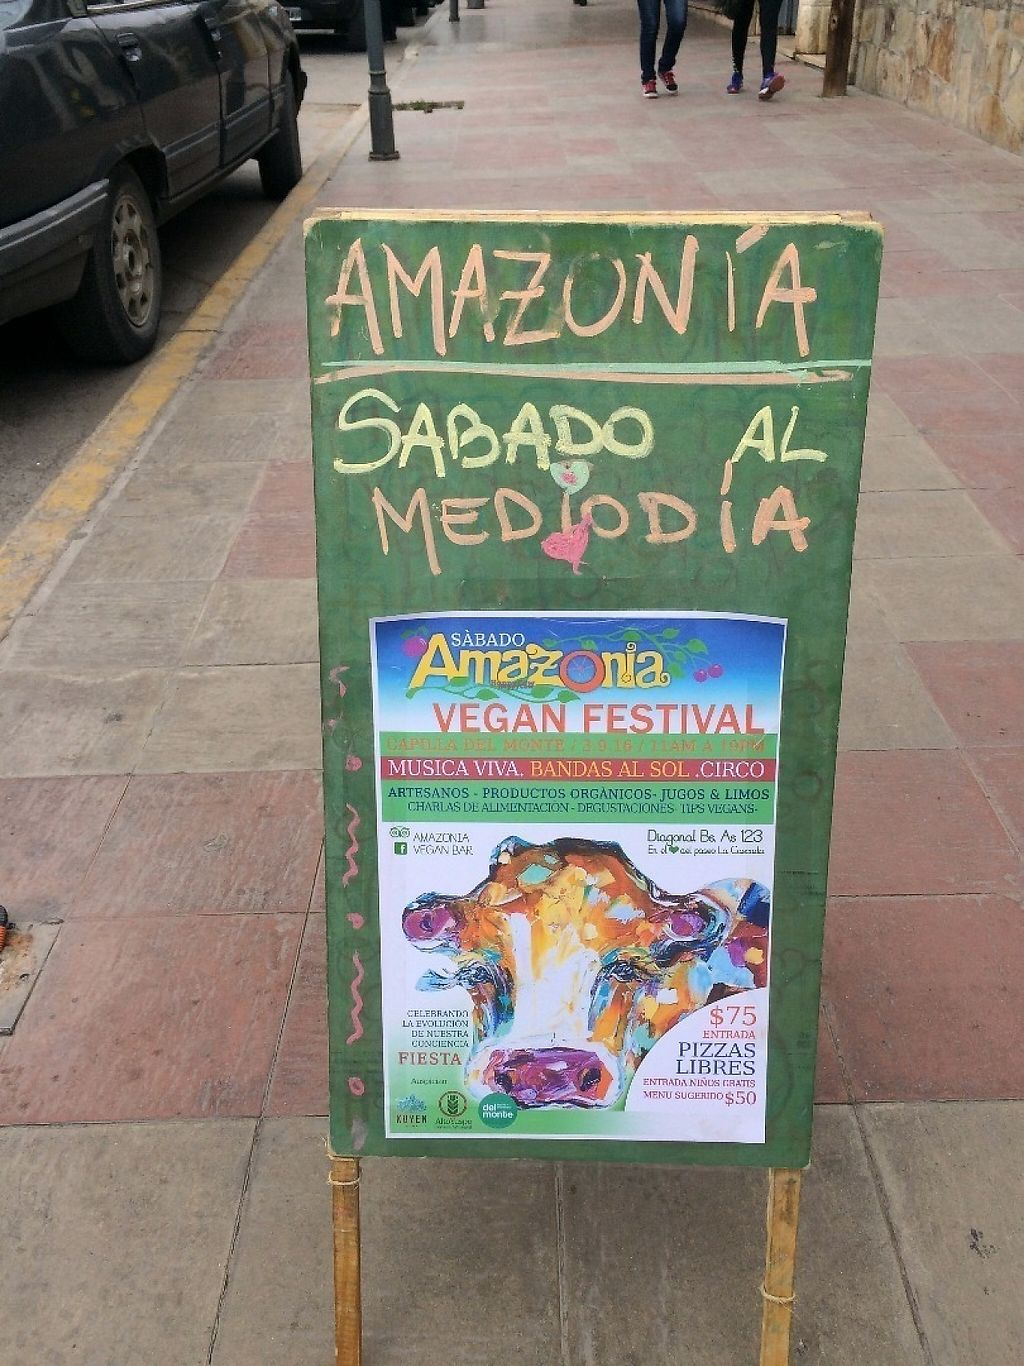 """Photo of Amazonia  by <a href=""""/members/profile/BudgetBucketList"""">BudgetBucketList</a> <br/>Vegan event organized by Amazonia <br/> December 14, 2016  - <a href='/contact/abuse/image/83896/200874'>Report</a>"""